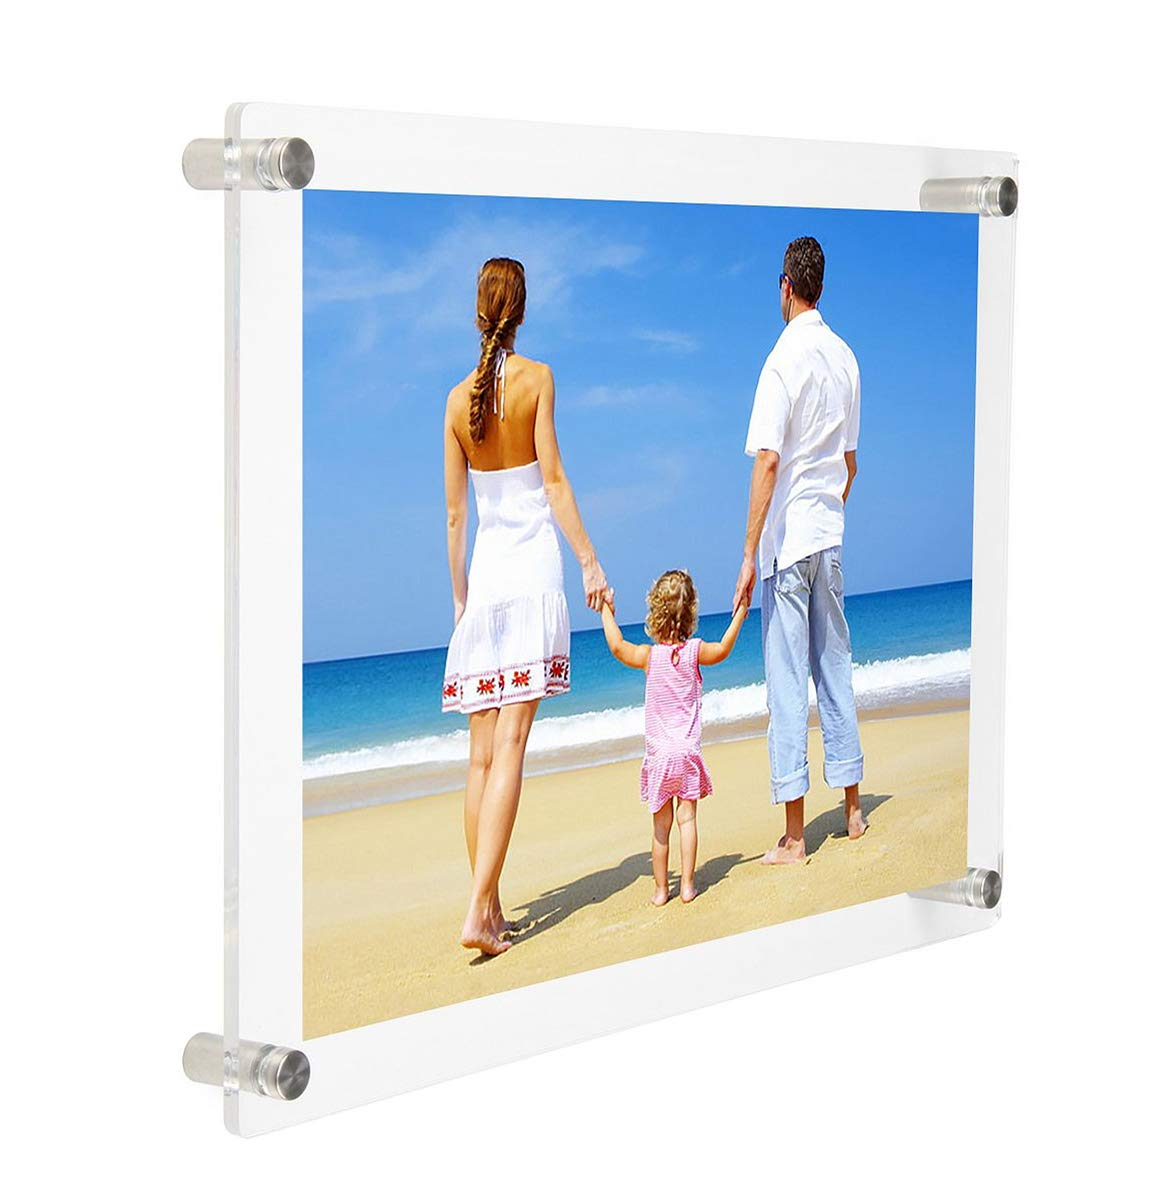 NIUBEE Clear A5 Picture Frame 7×9″, Acrylic Wall Mount Floating Photo Frames for Paper, Photography Display